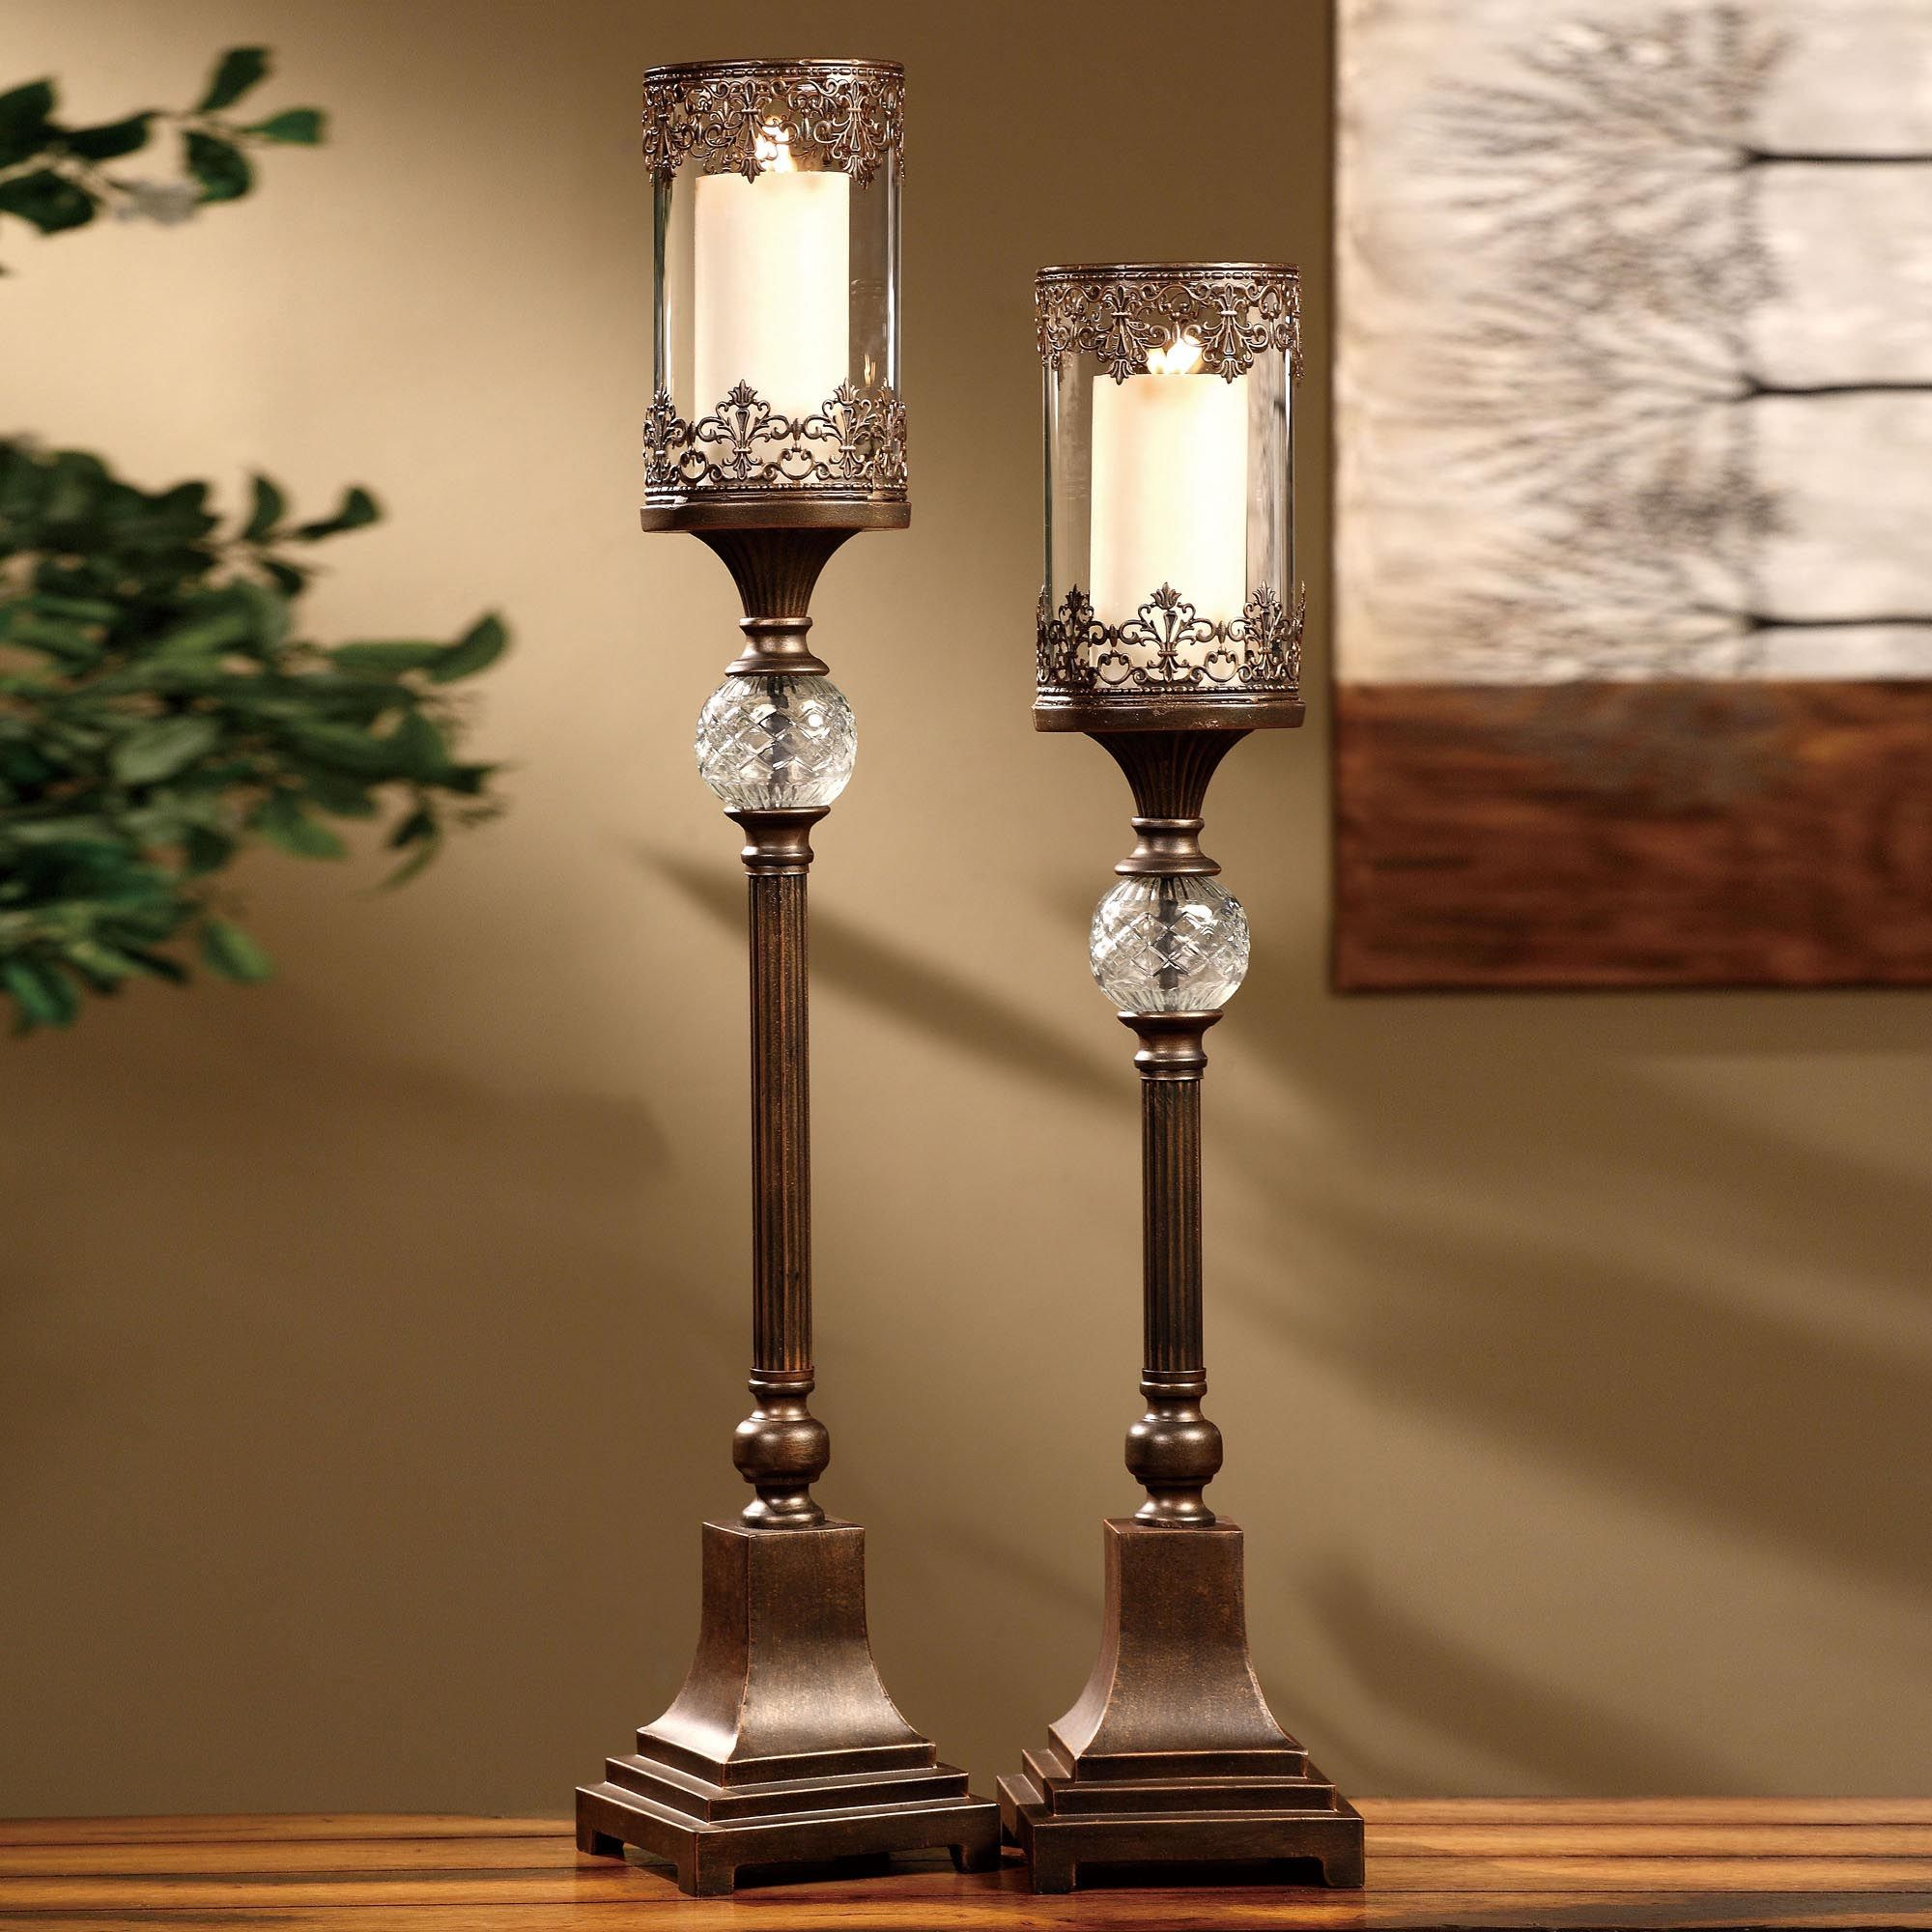 Large Candle Holders For Fireplace Candles In Fireplace Fireplace Candle Holder Floor Candle Holders